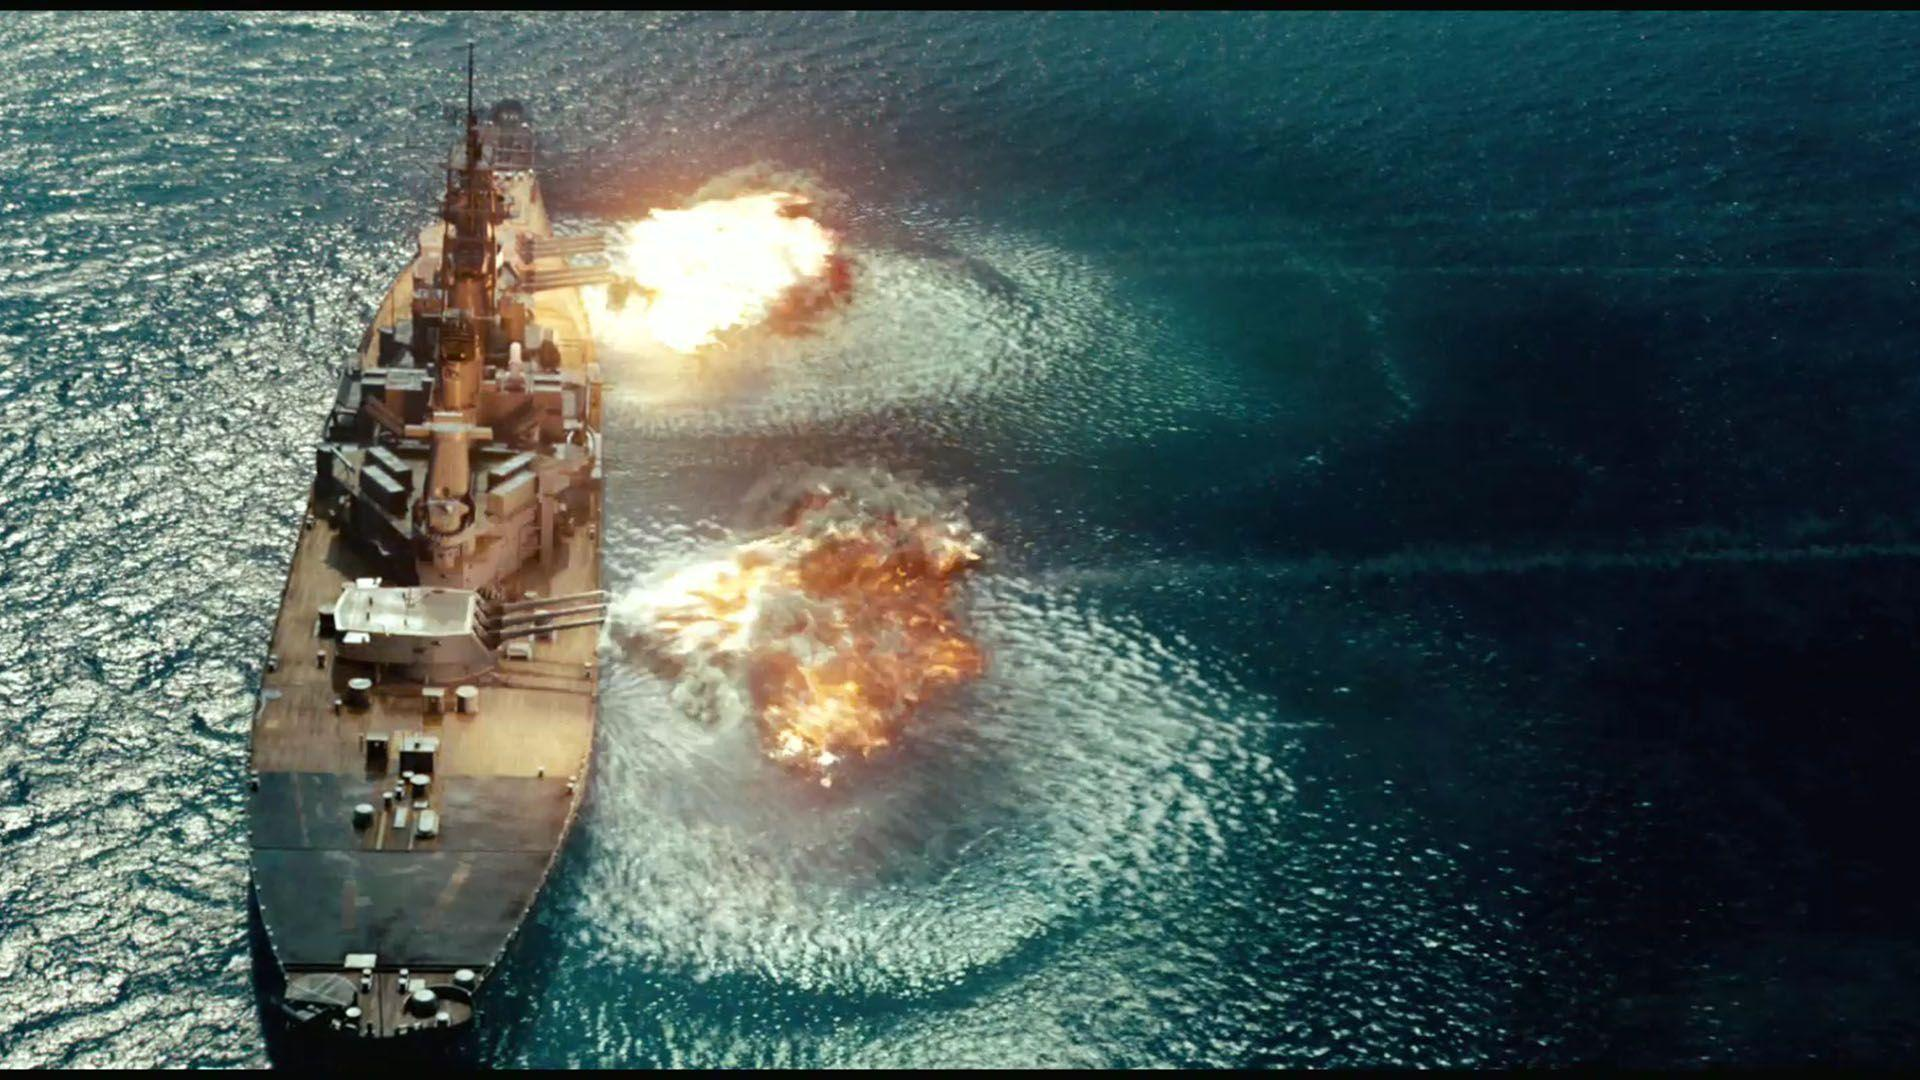 battleship wallpapers sparkly photo - photo #1